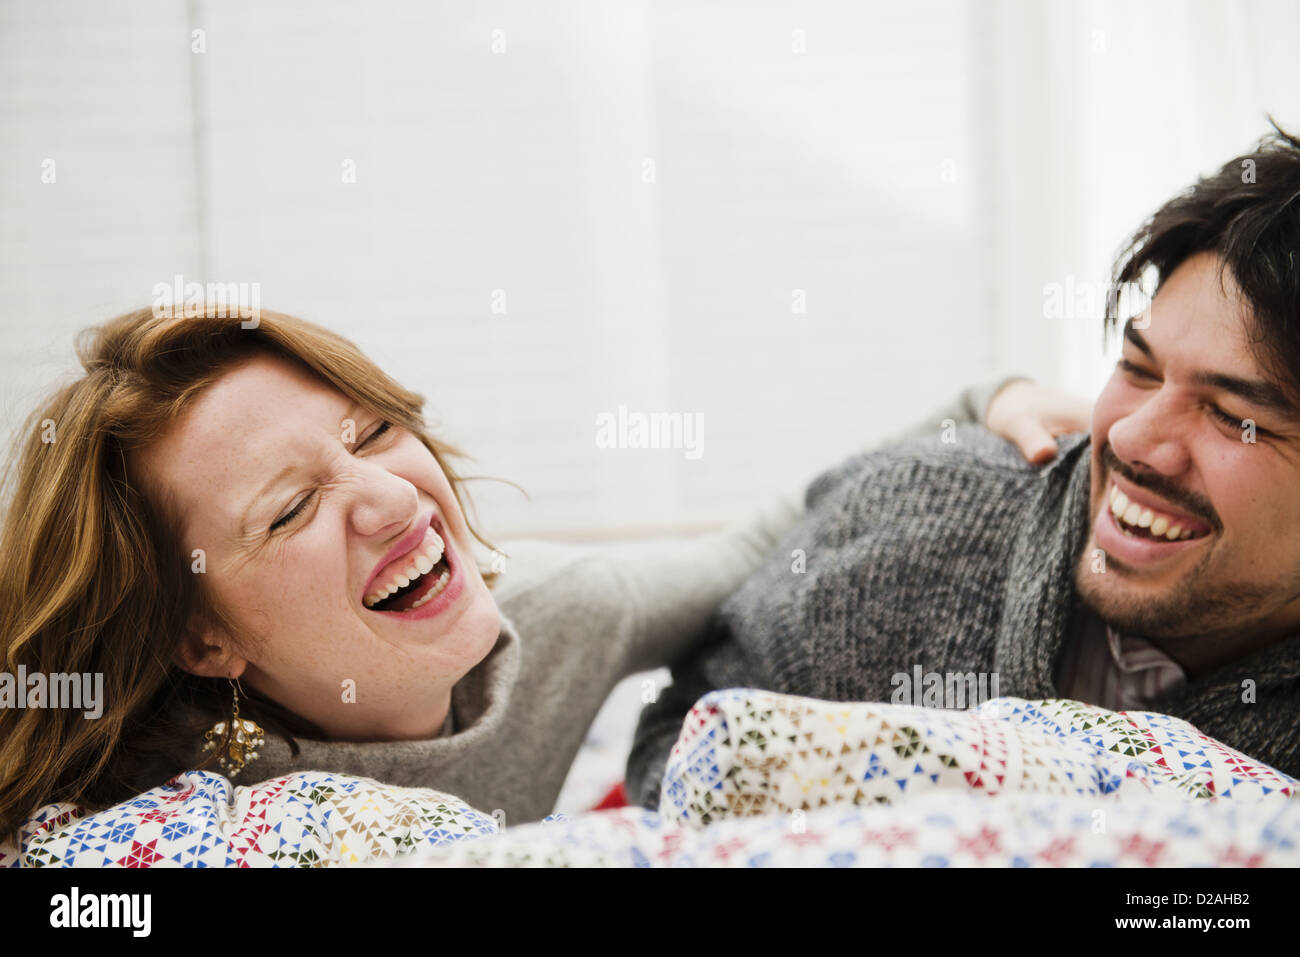 Couple laughing together on bed Photo Stock